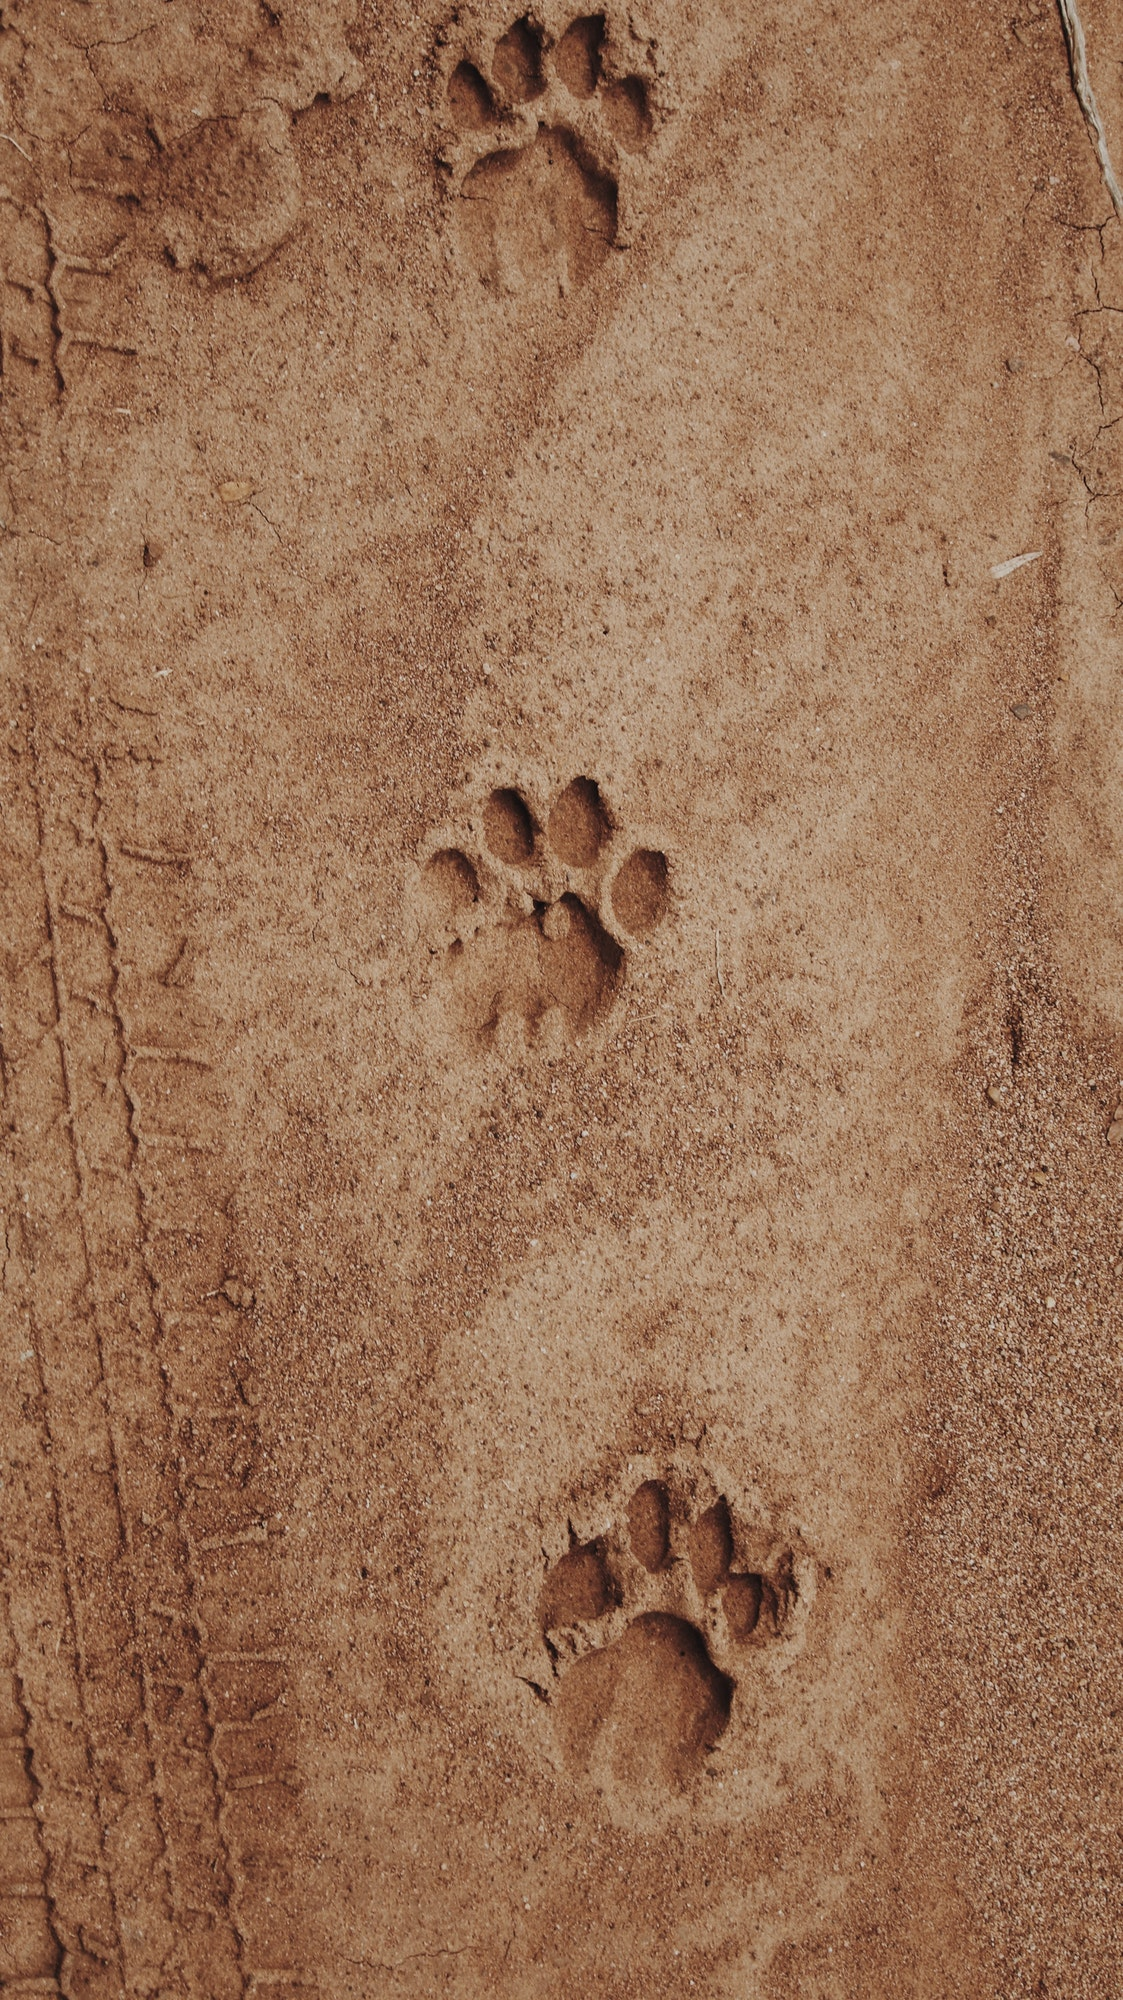 Animal tracks in mud